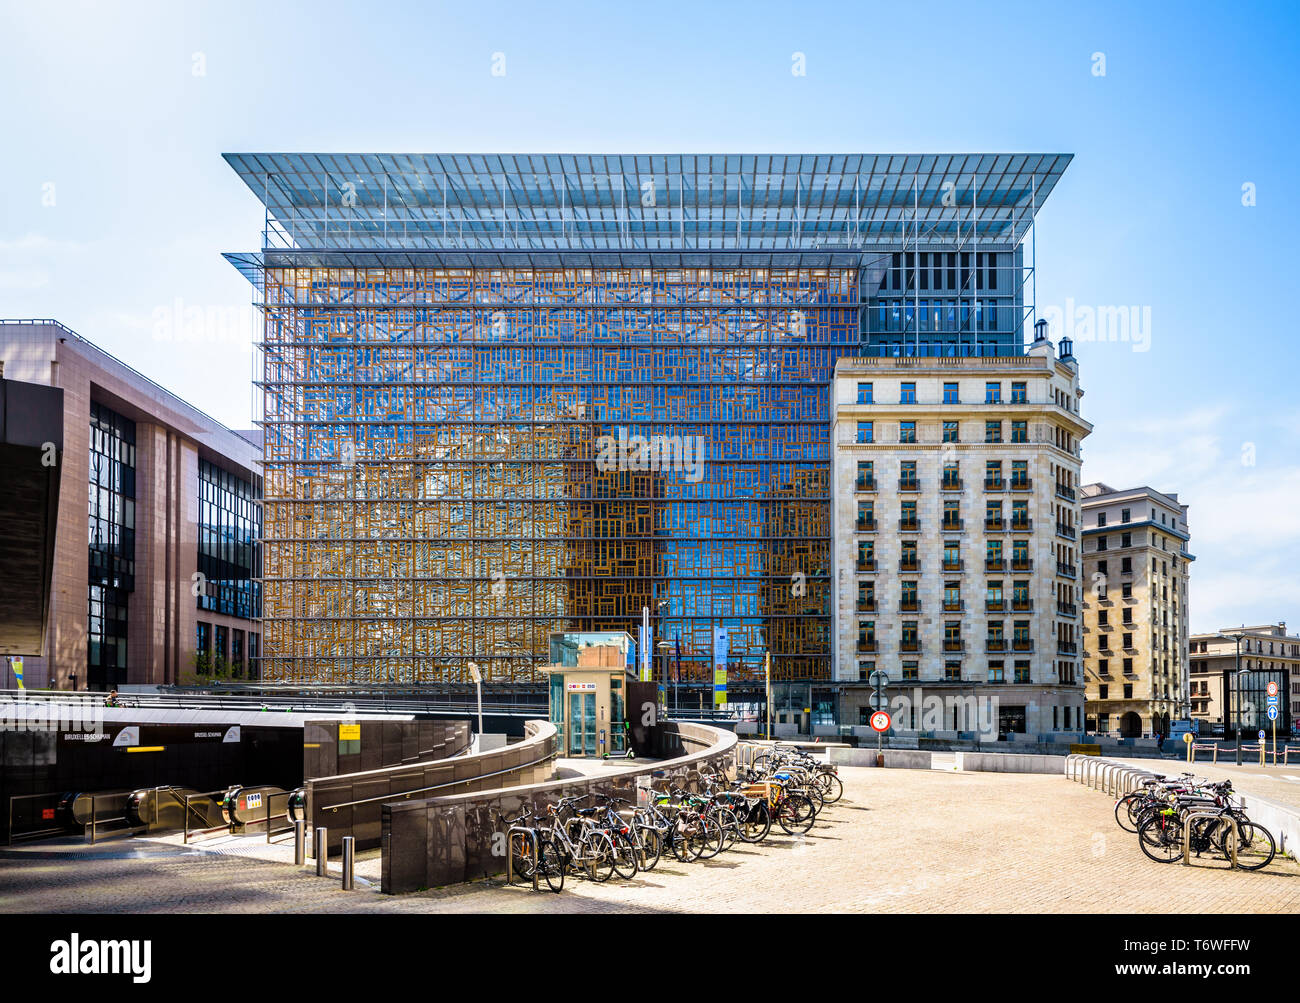 Front view of the Europa building, headquarters of the Council of the European Union in Brussels, Belgium, with bicycles parked in the foreground. - Stock Image